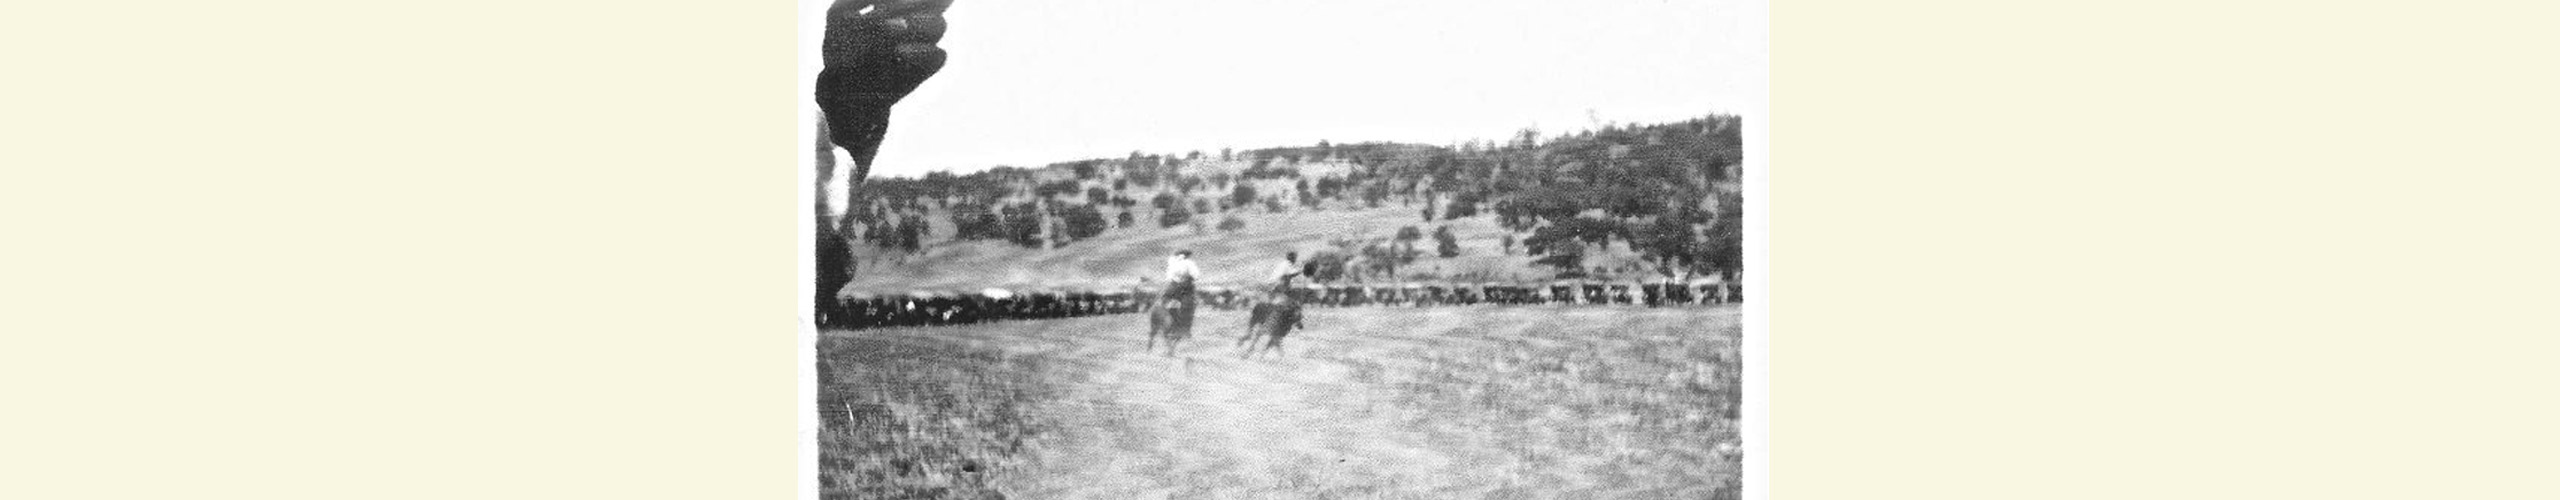 Parkfield_History_Rodeo